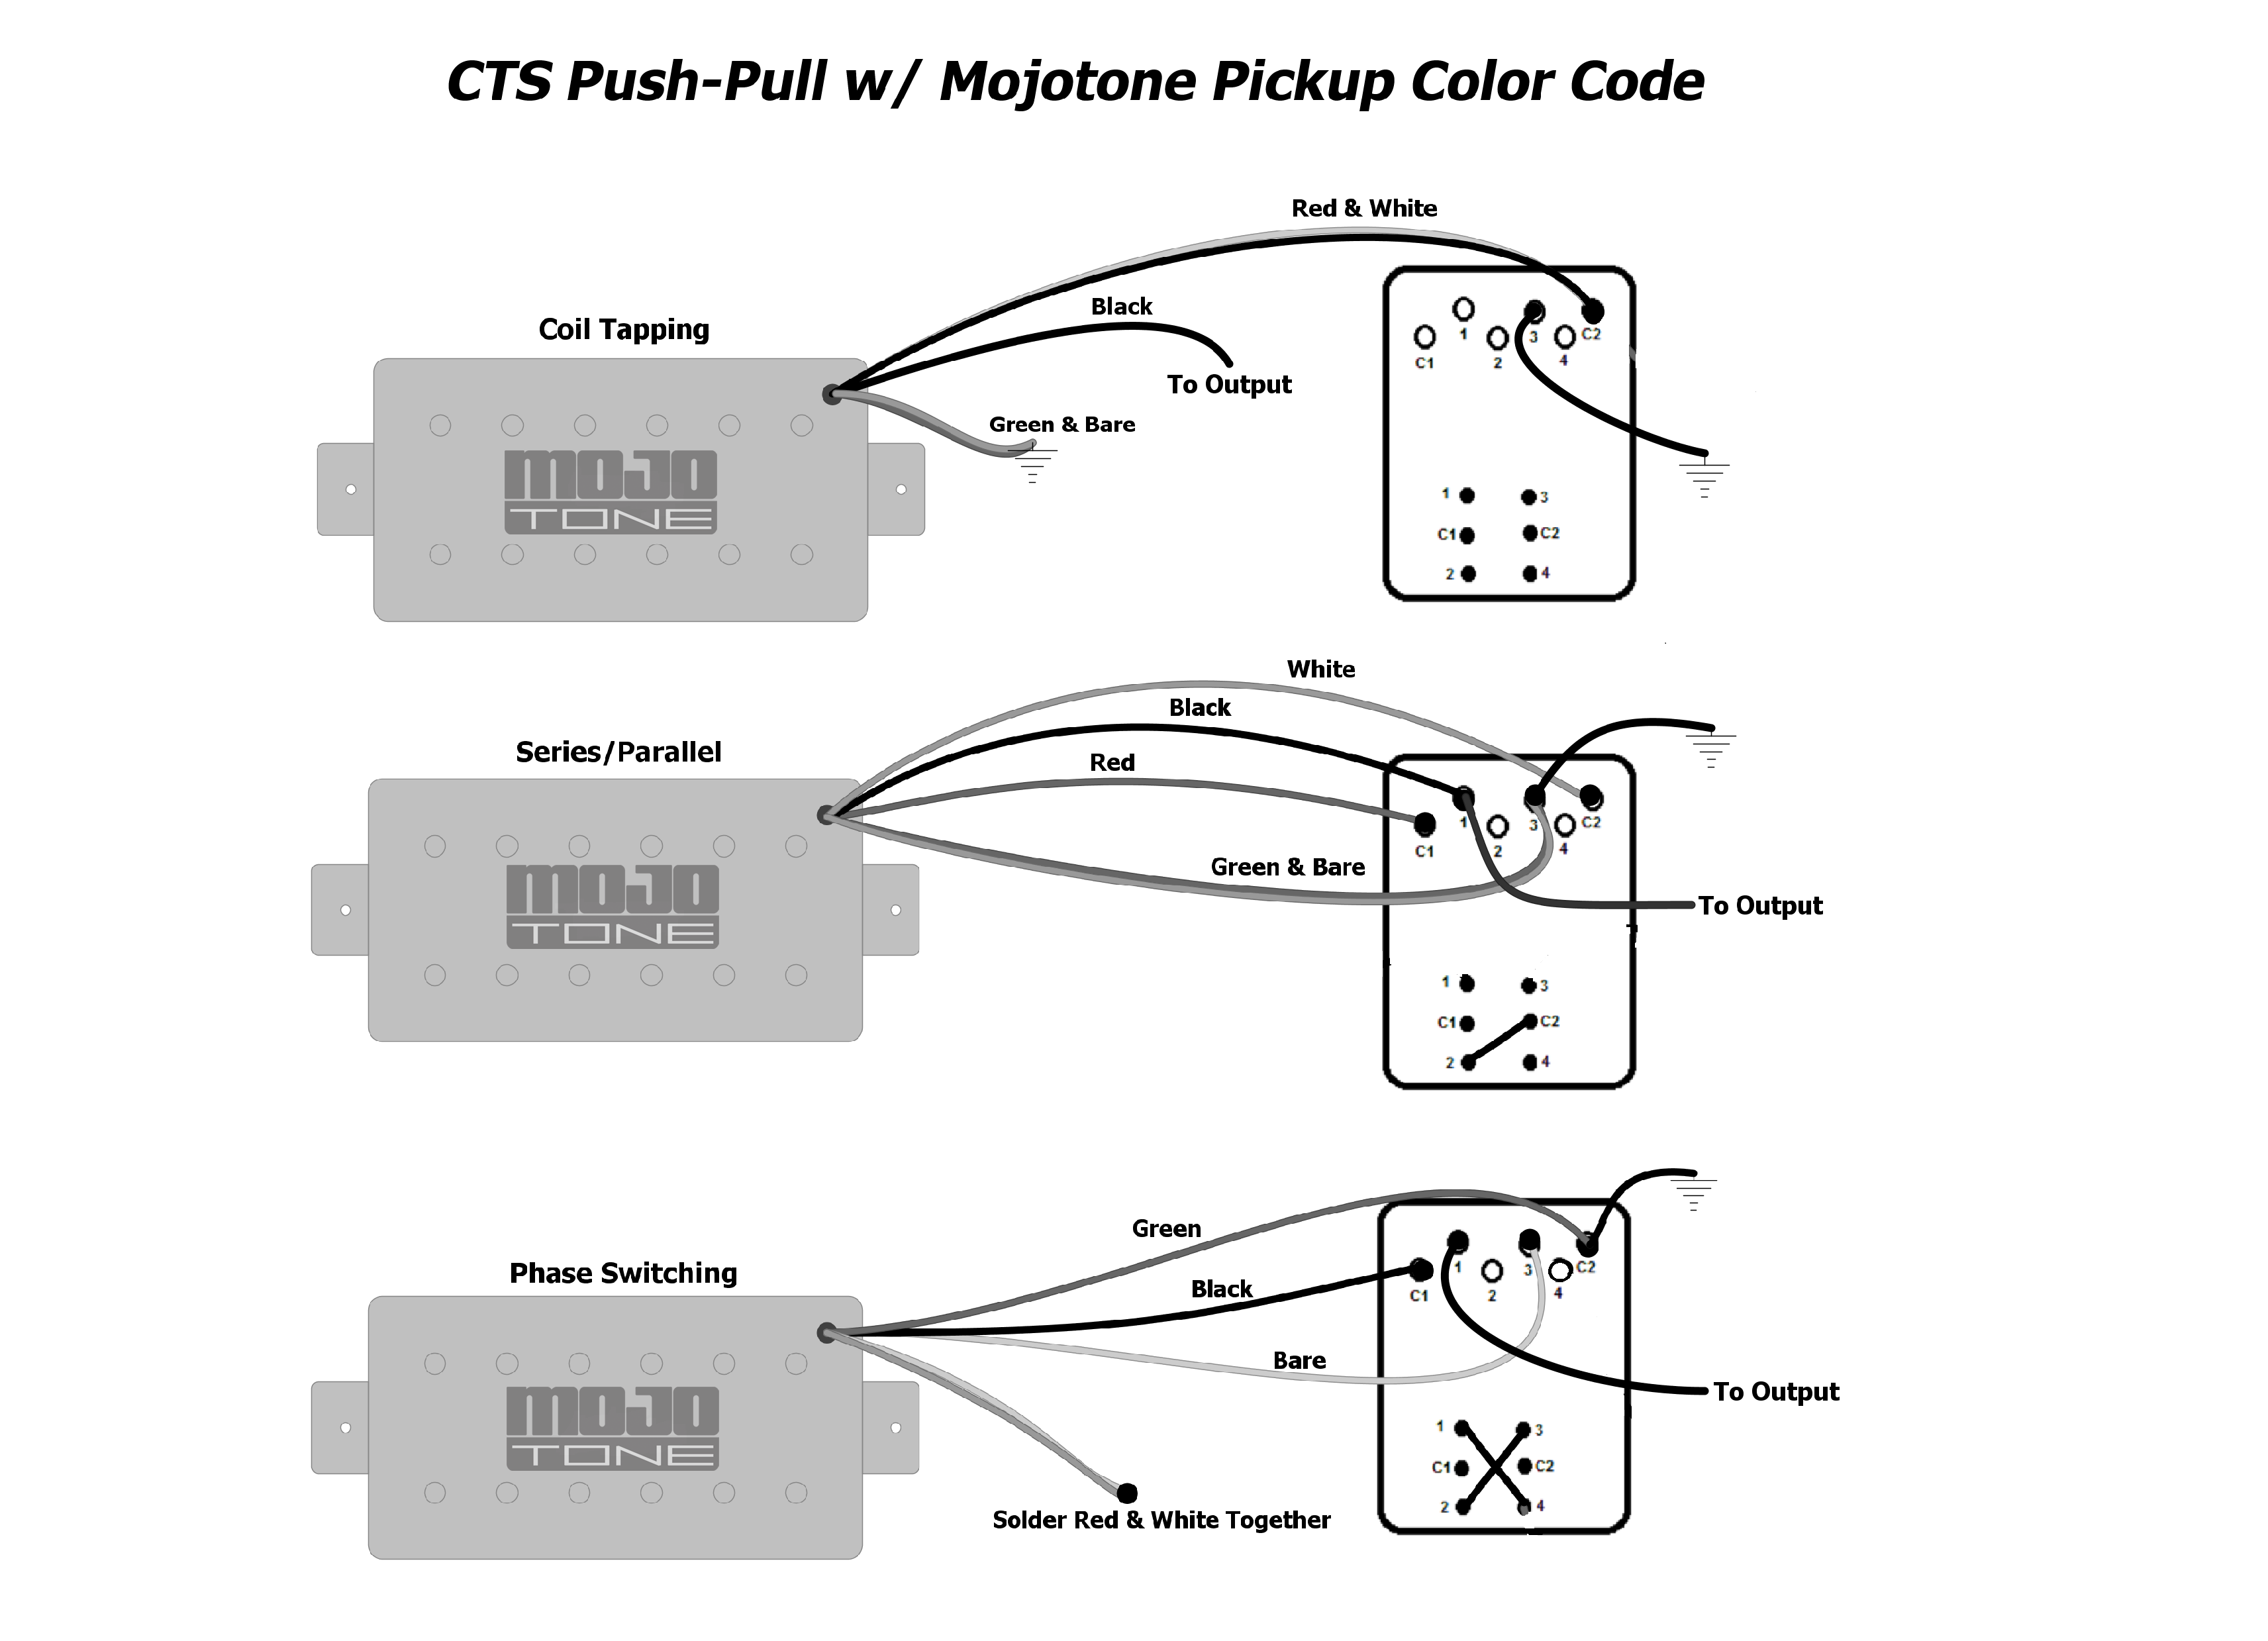 Cts Wiring Diagram Services Cadillac Ats Radio Help With Push Pull The Gear Page Rh Thegearpage Net 2008 Diagrams 2003